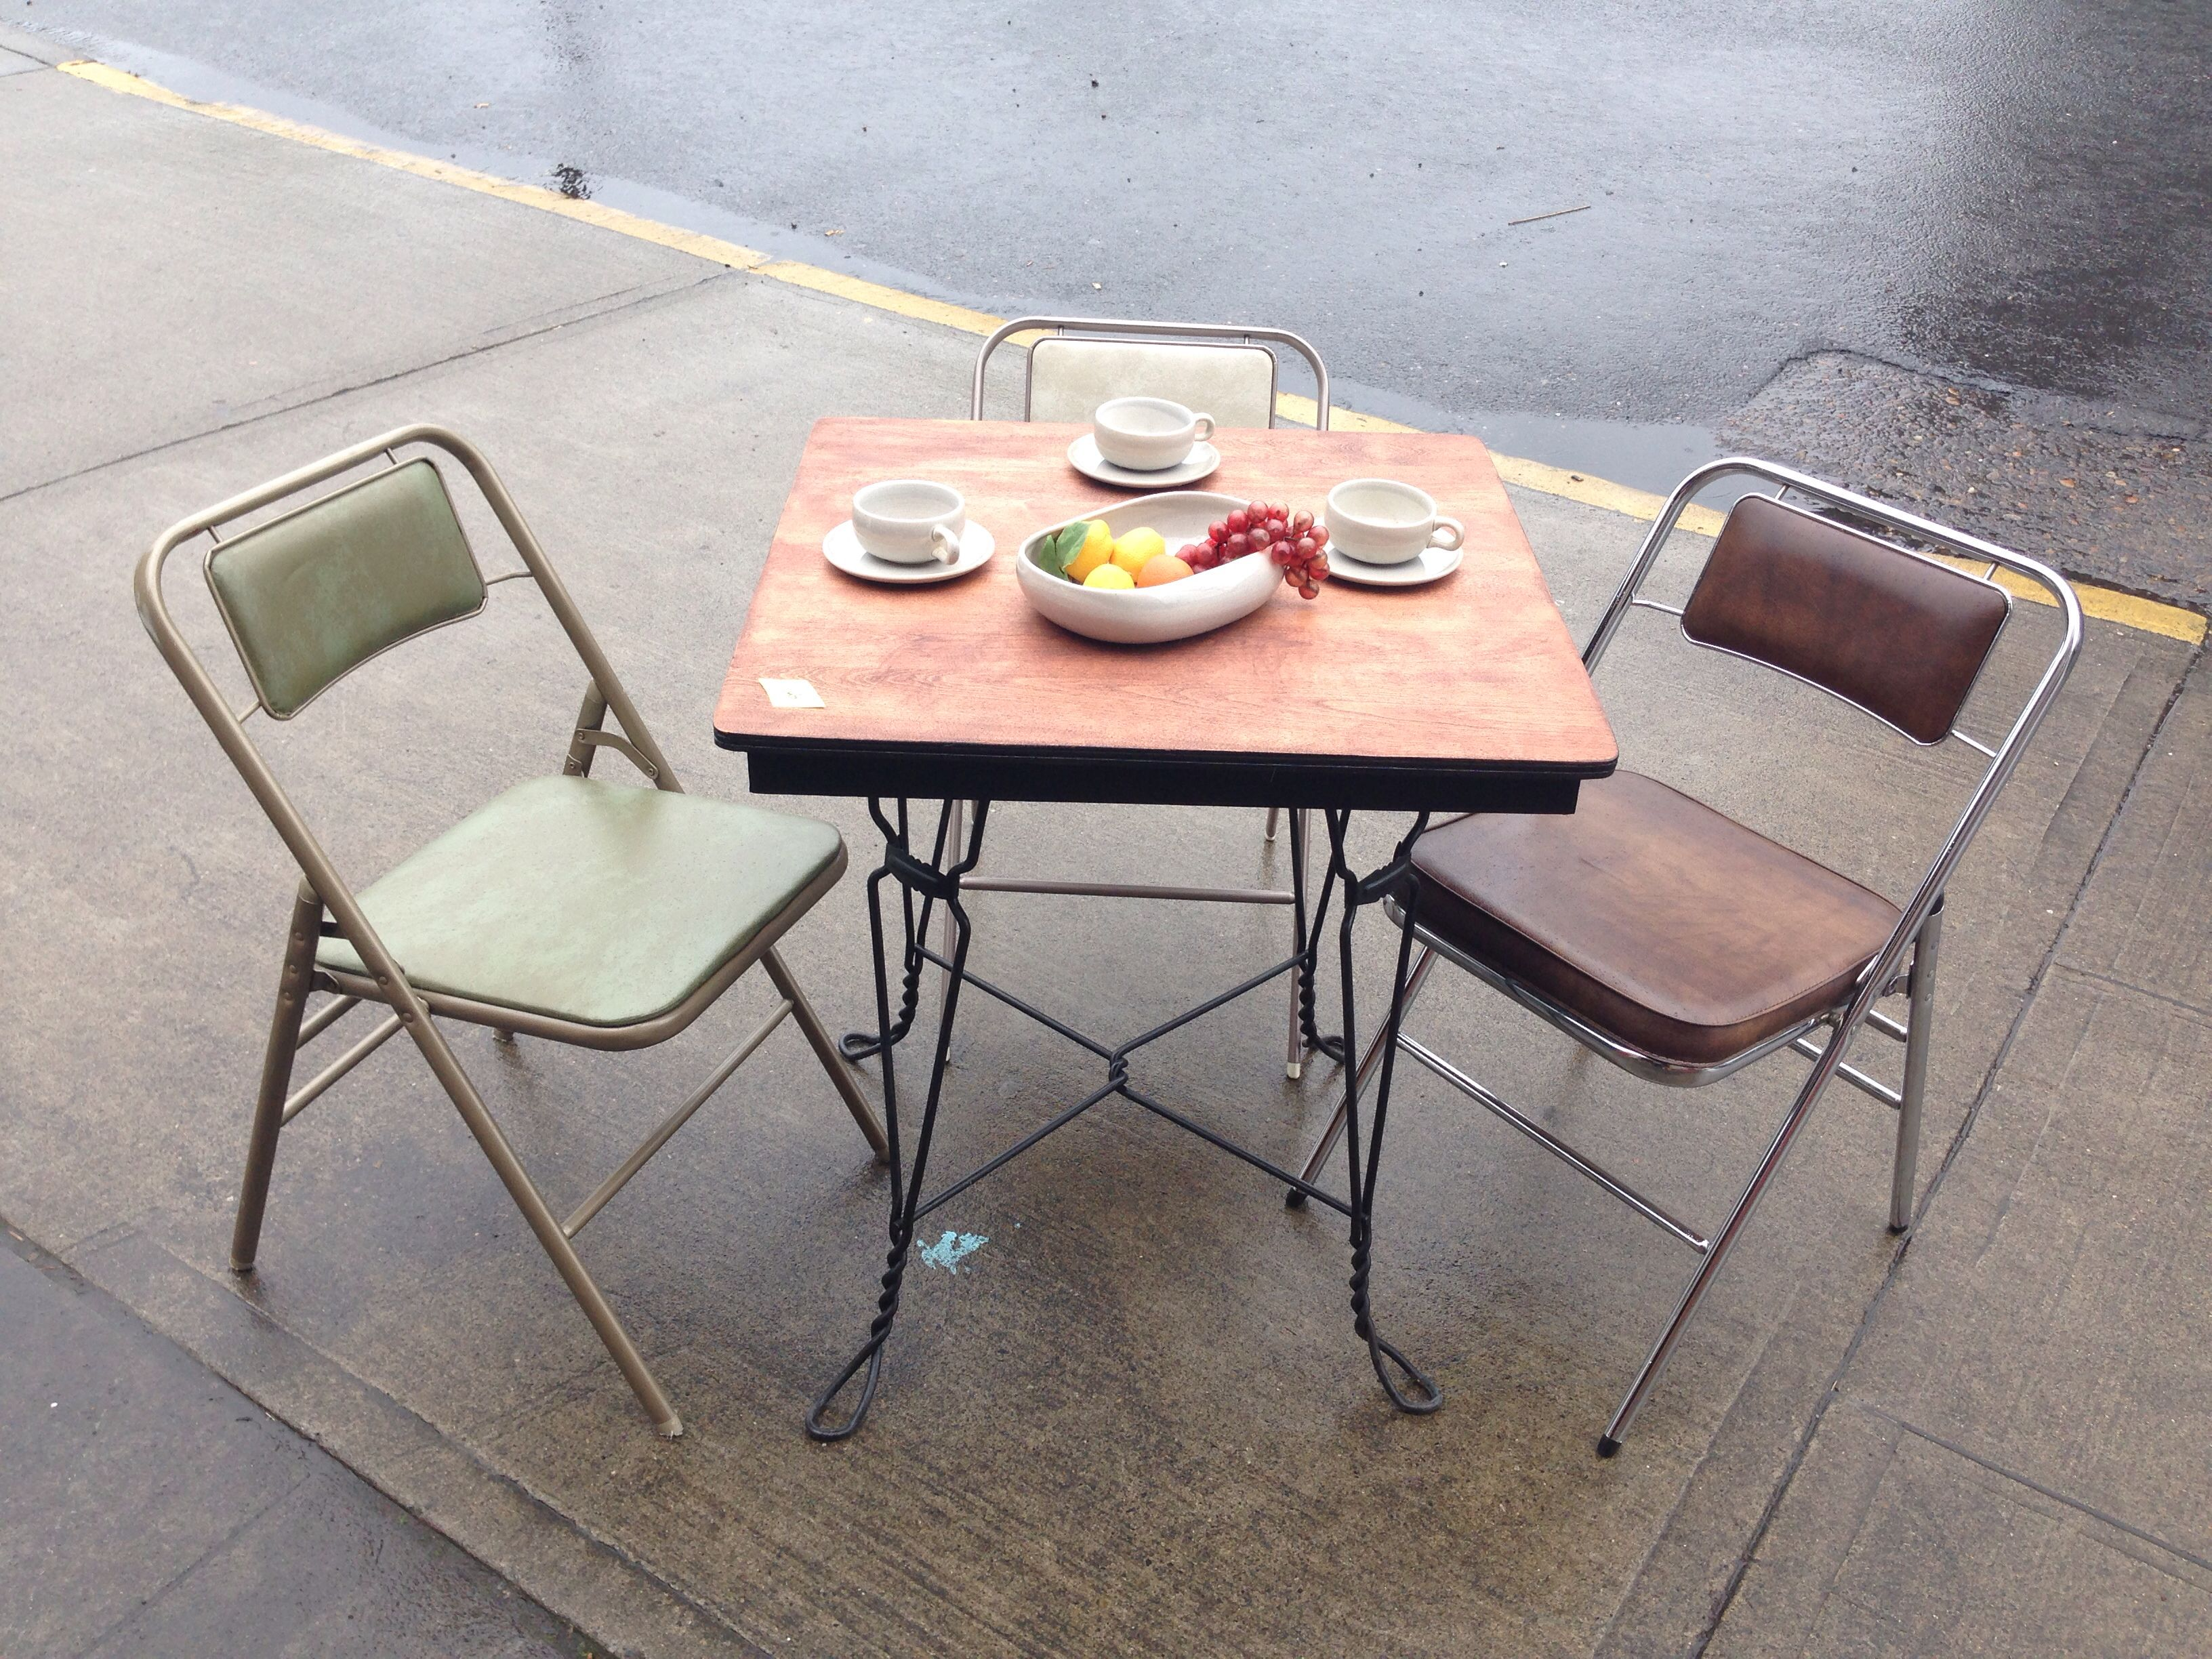 This Fantastic Small Wood Table With Funky Iron Legs Now In The Shop. Stop  By To Have A Look. 1310 Hawthorne Blvd. Portland, OR.